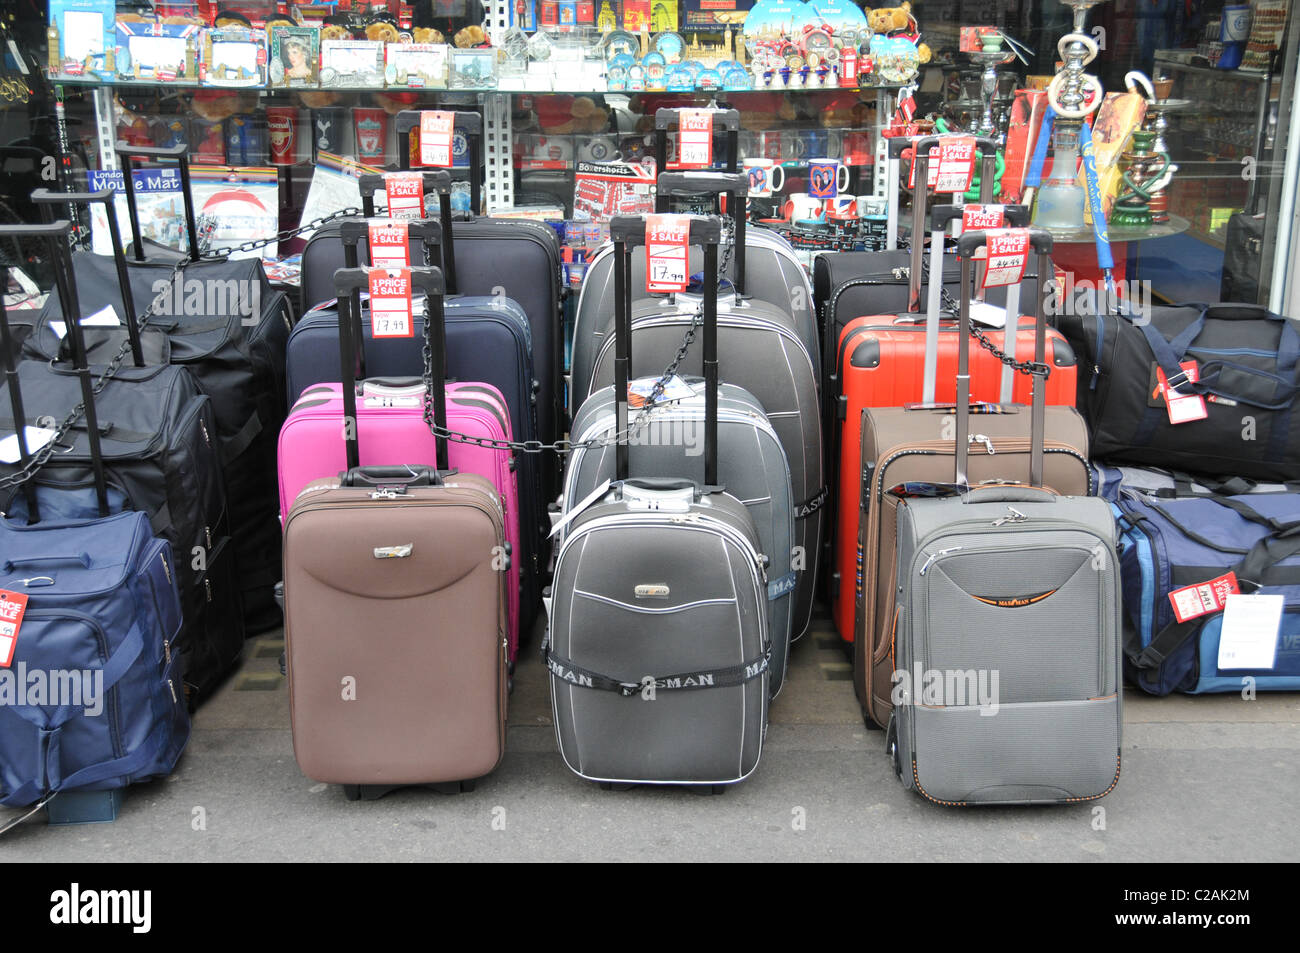 Suitcases luggage shop travel cases display sale on sale bargains arranged cheap - Stock Image